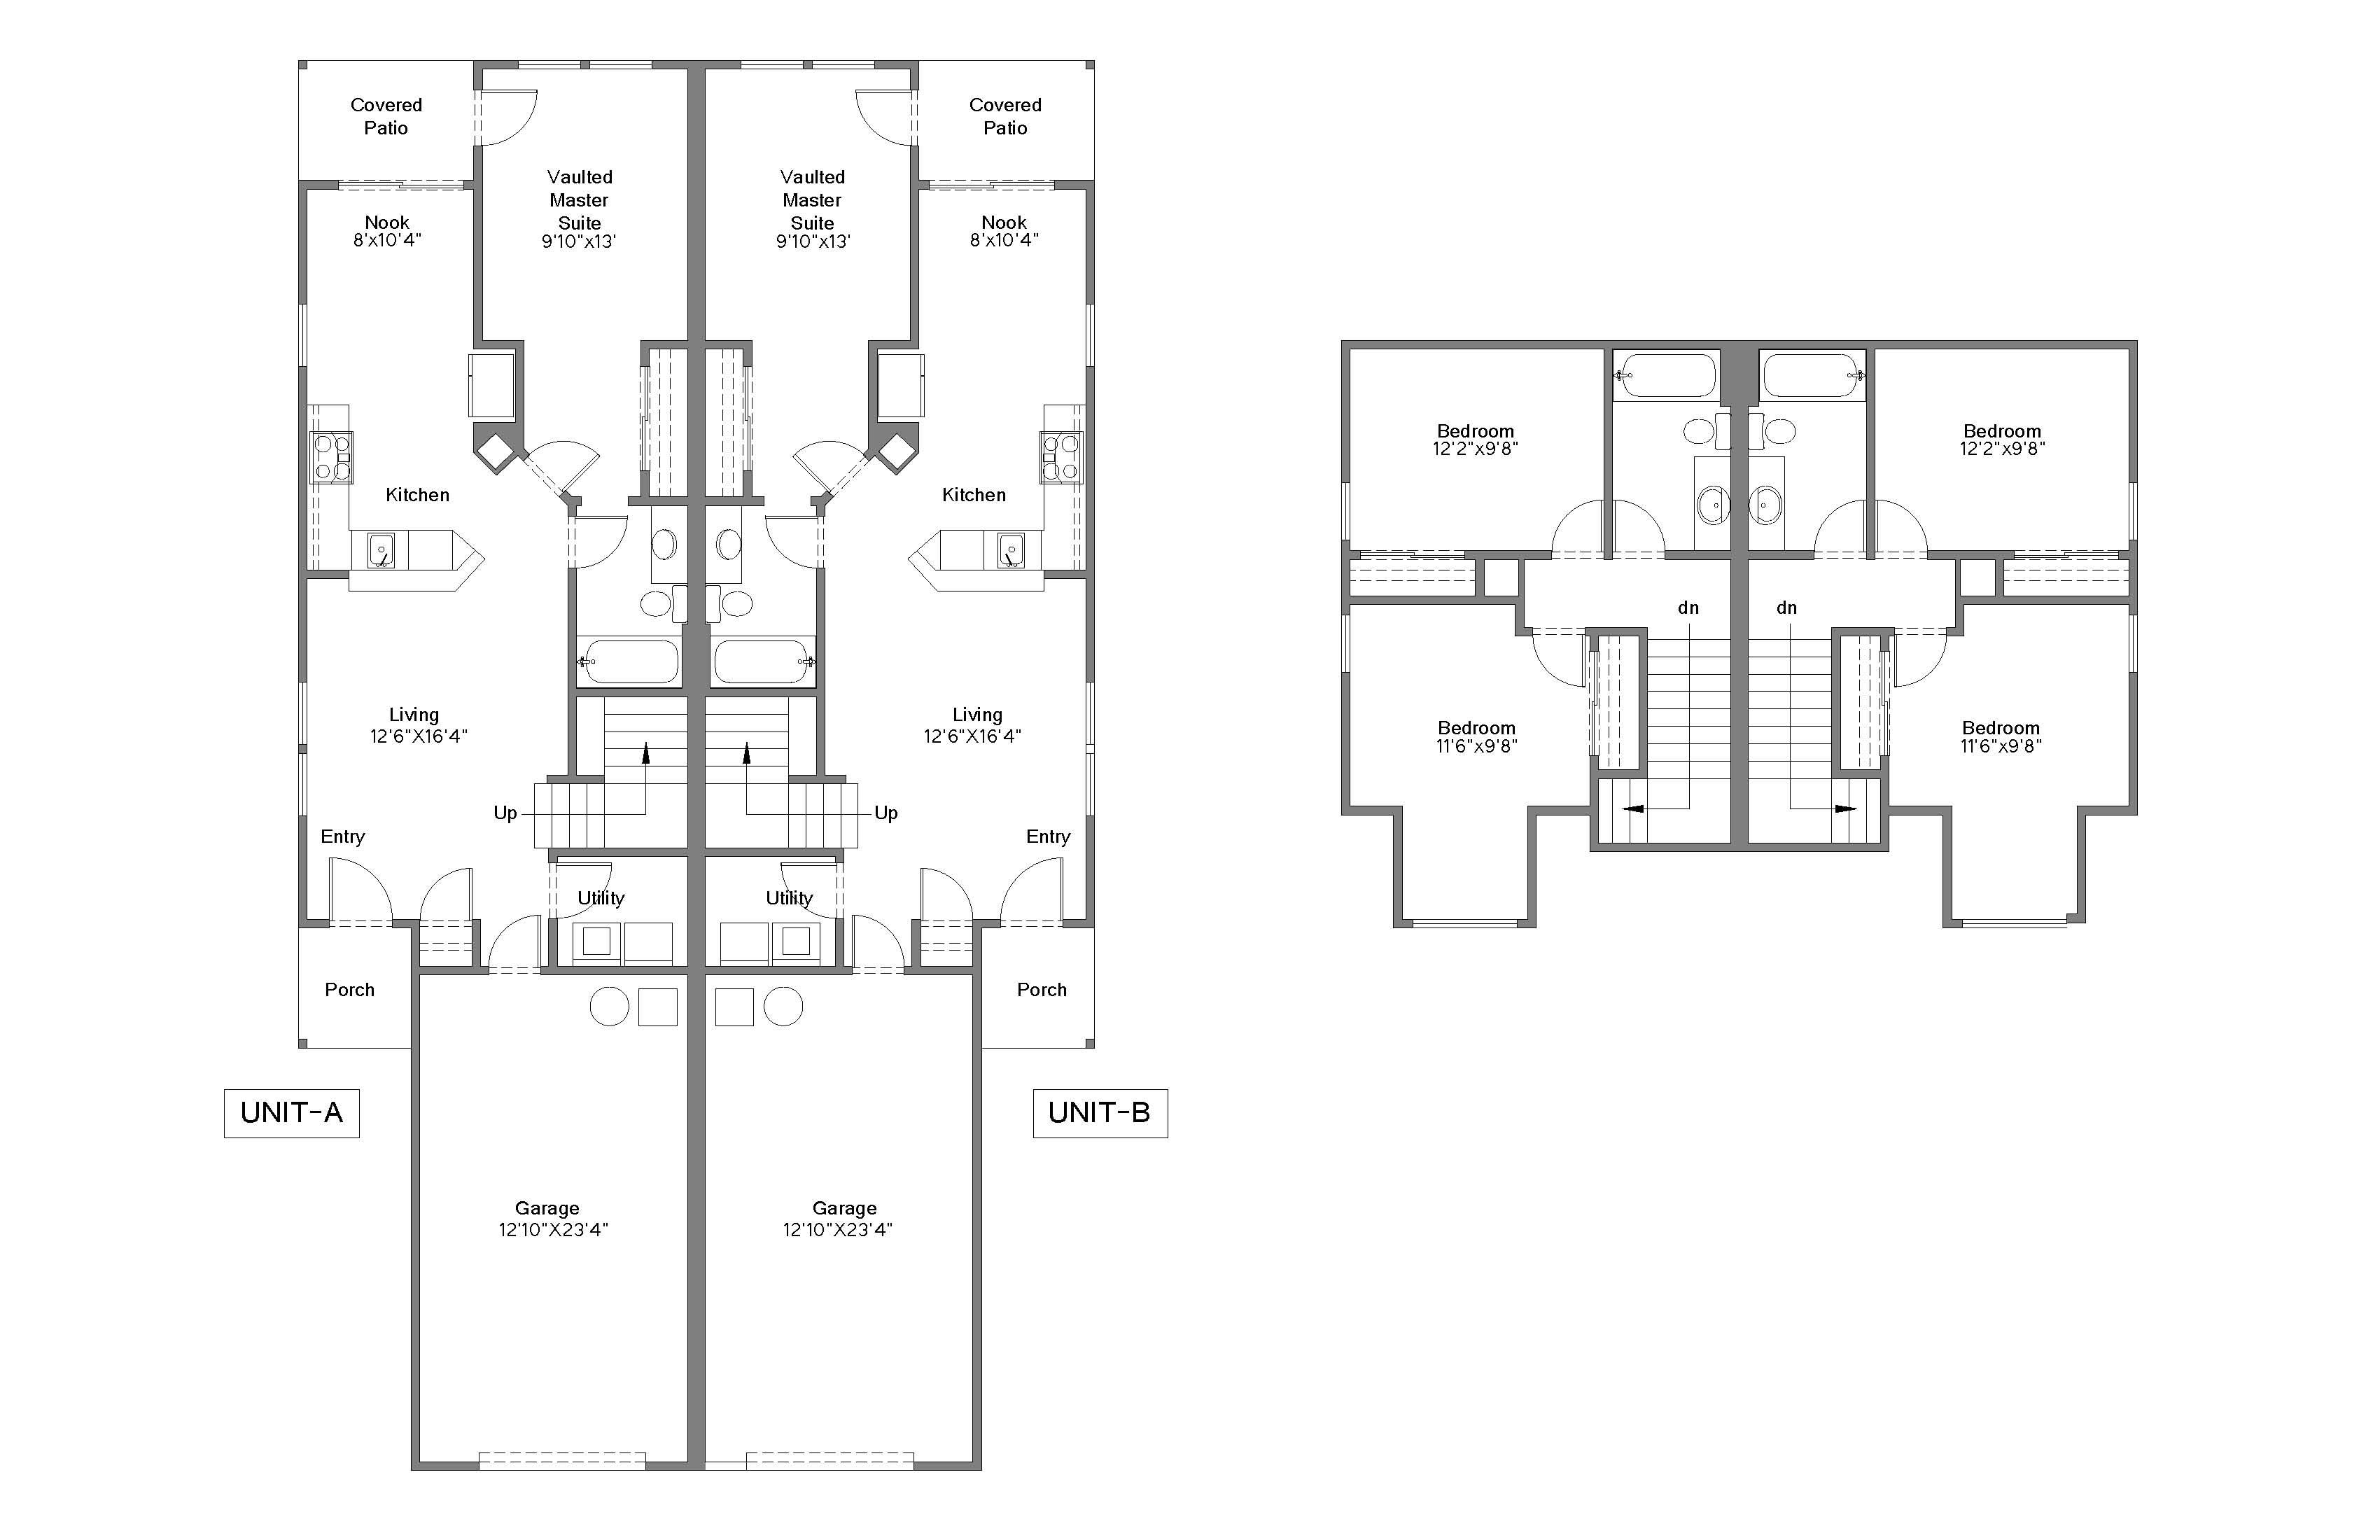 Architectural Floor Plan, Floor Plan With Autocad Drawings ...